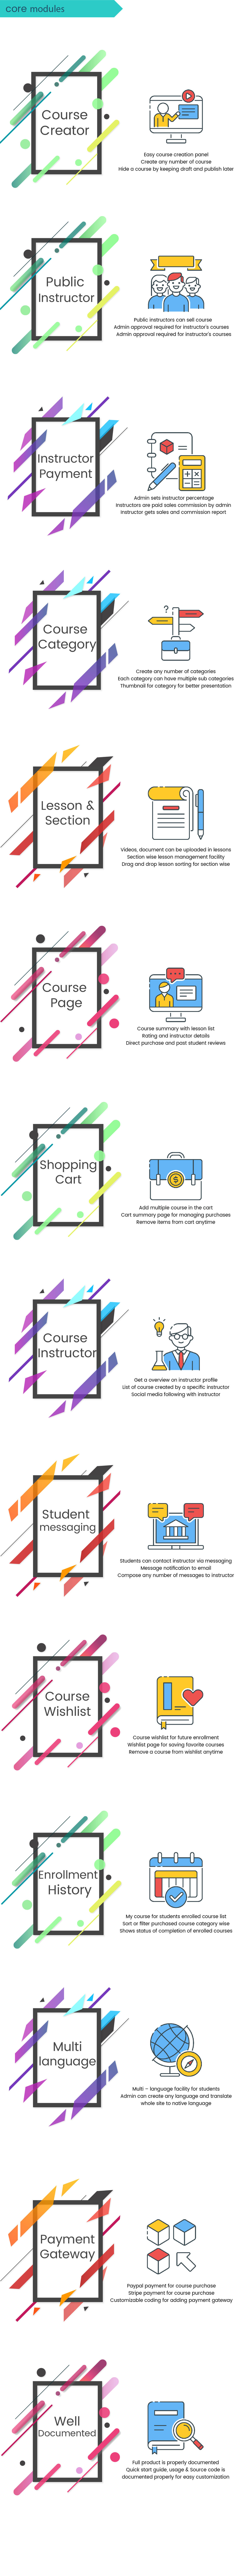 EduCore Learning Management System - 3